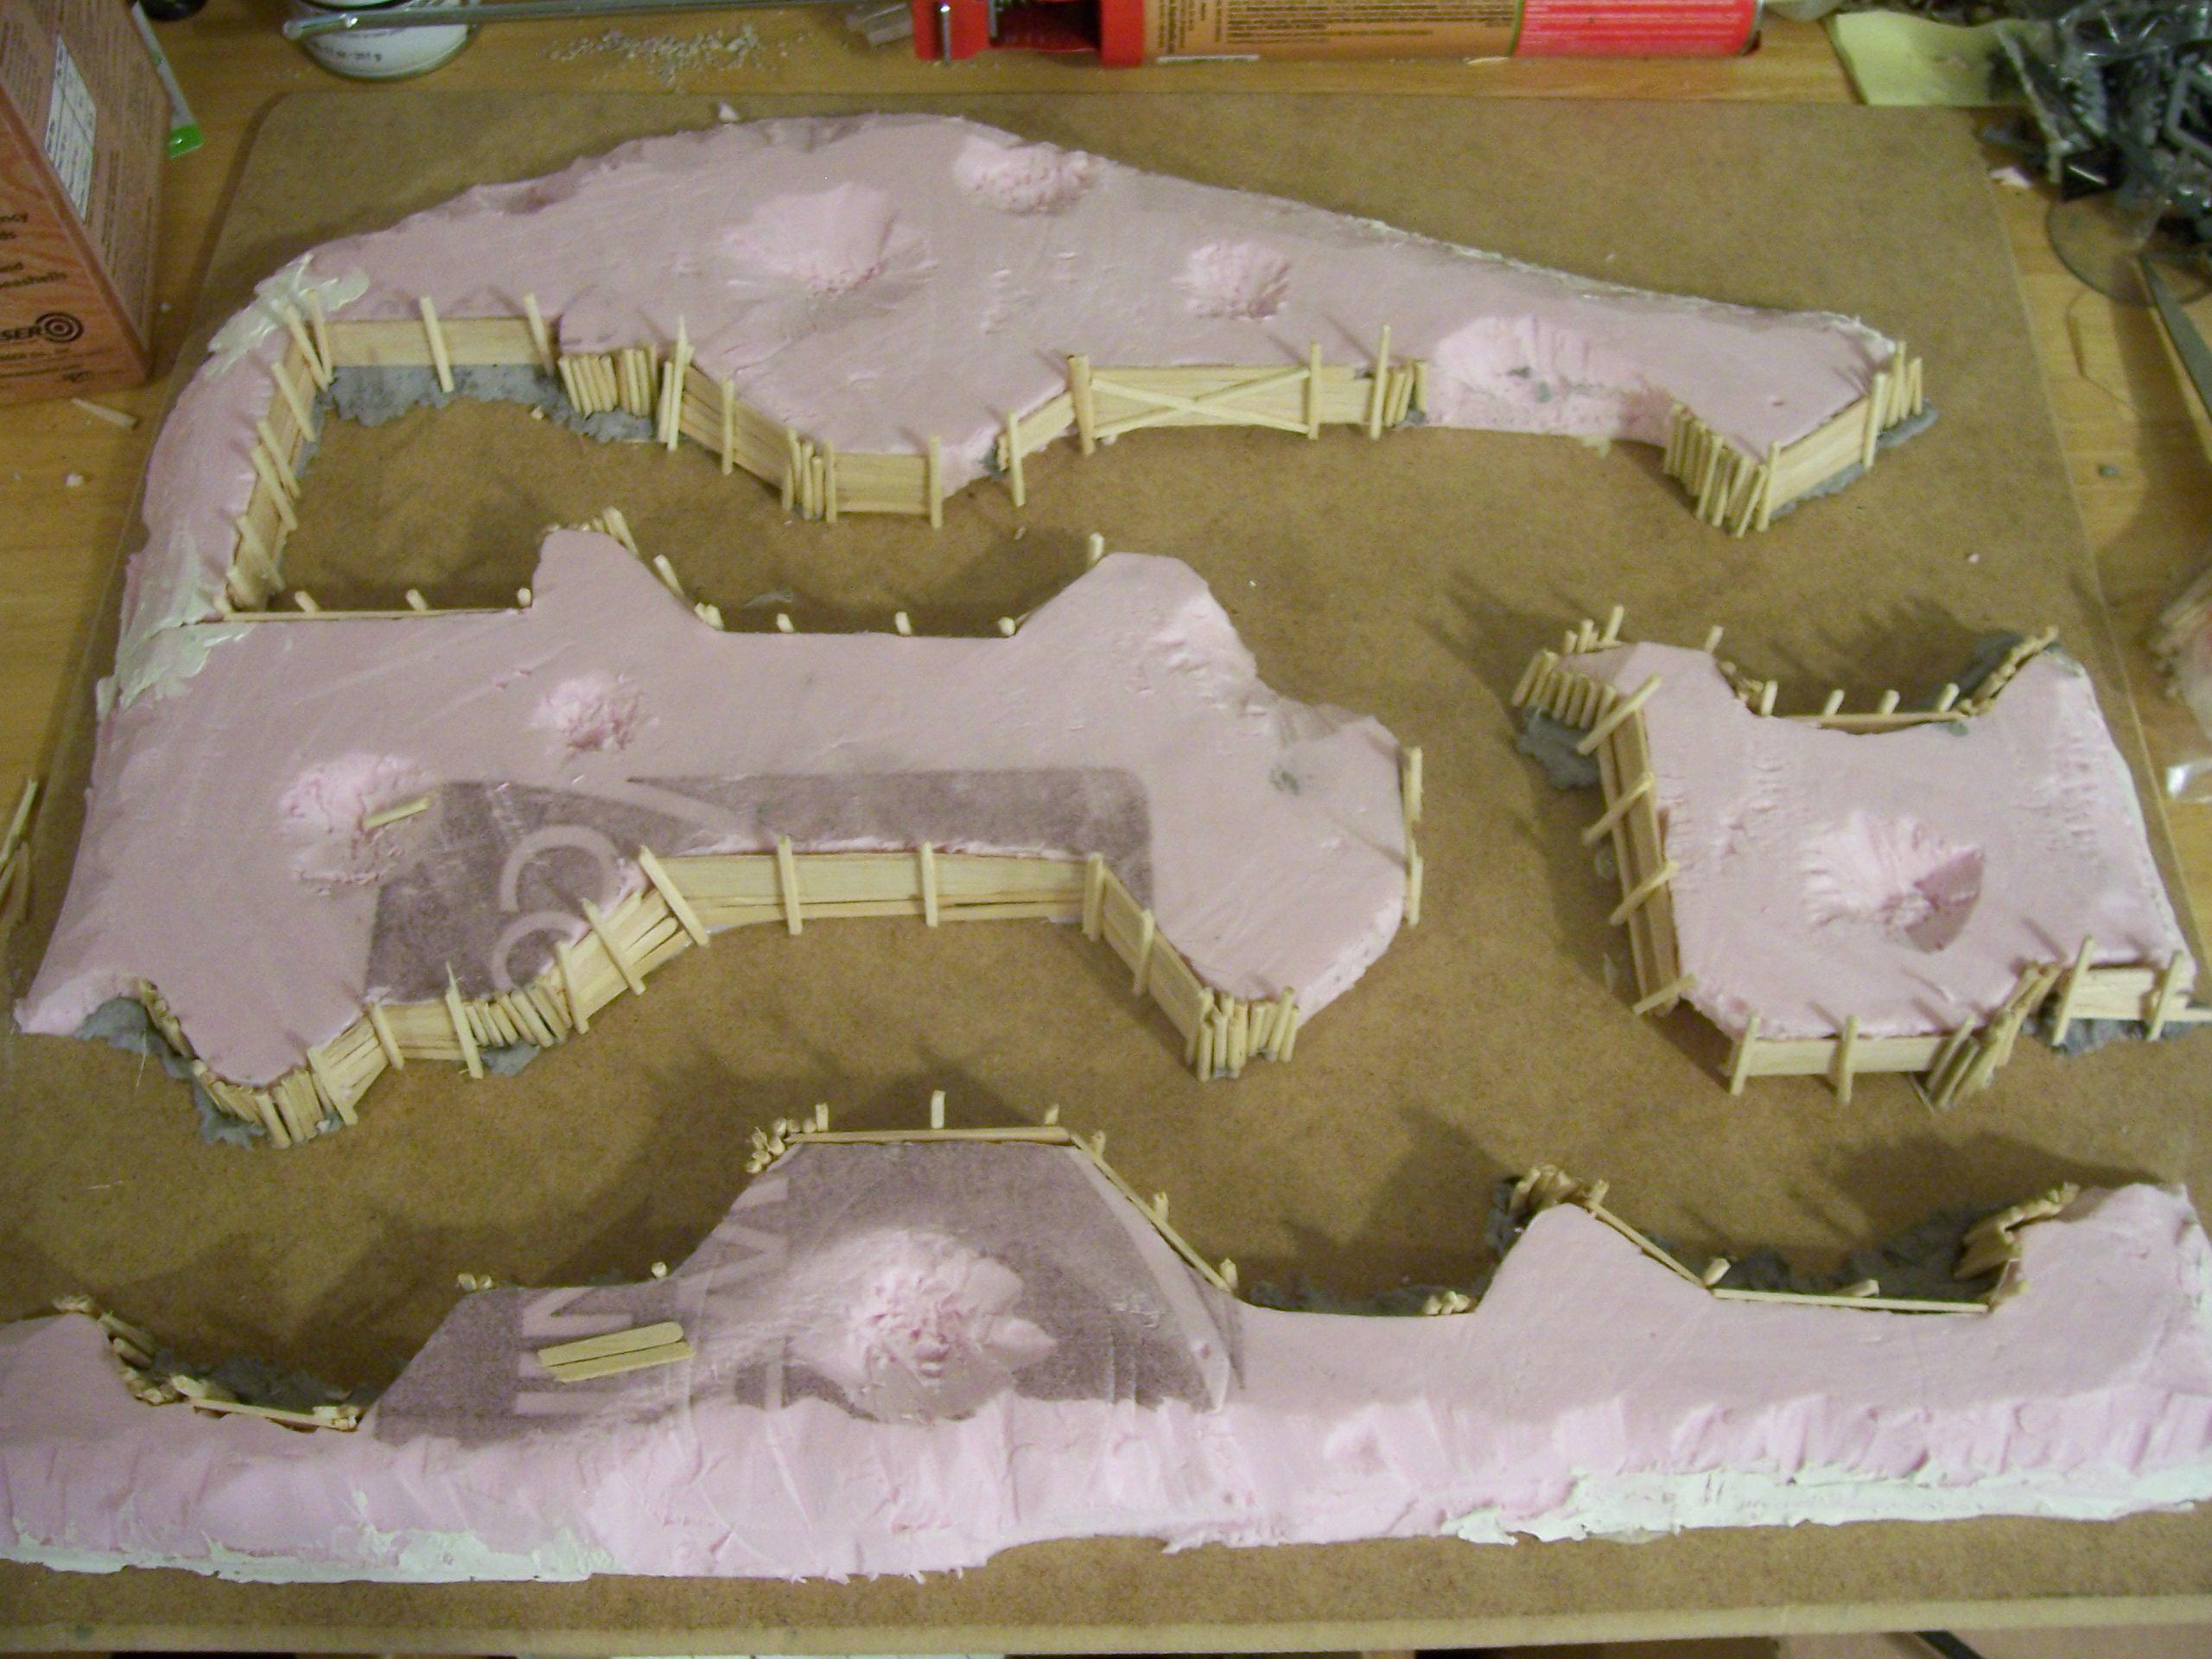 49k, Terrain, Trenches